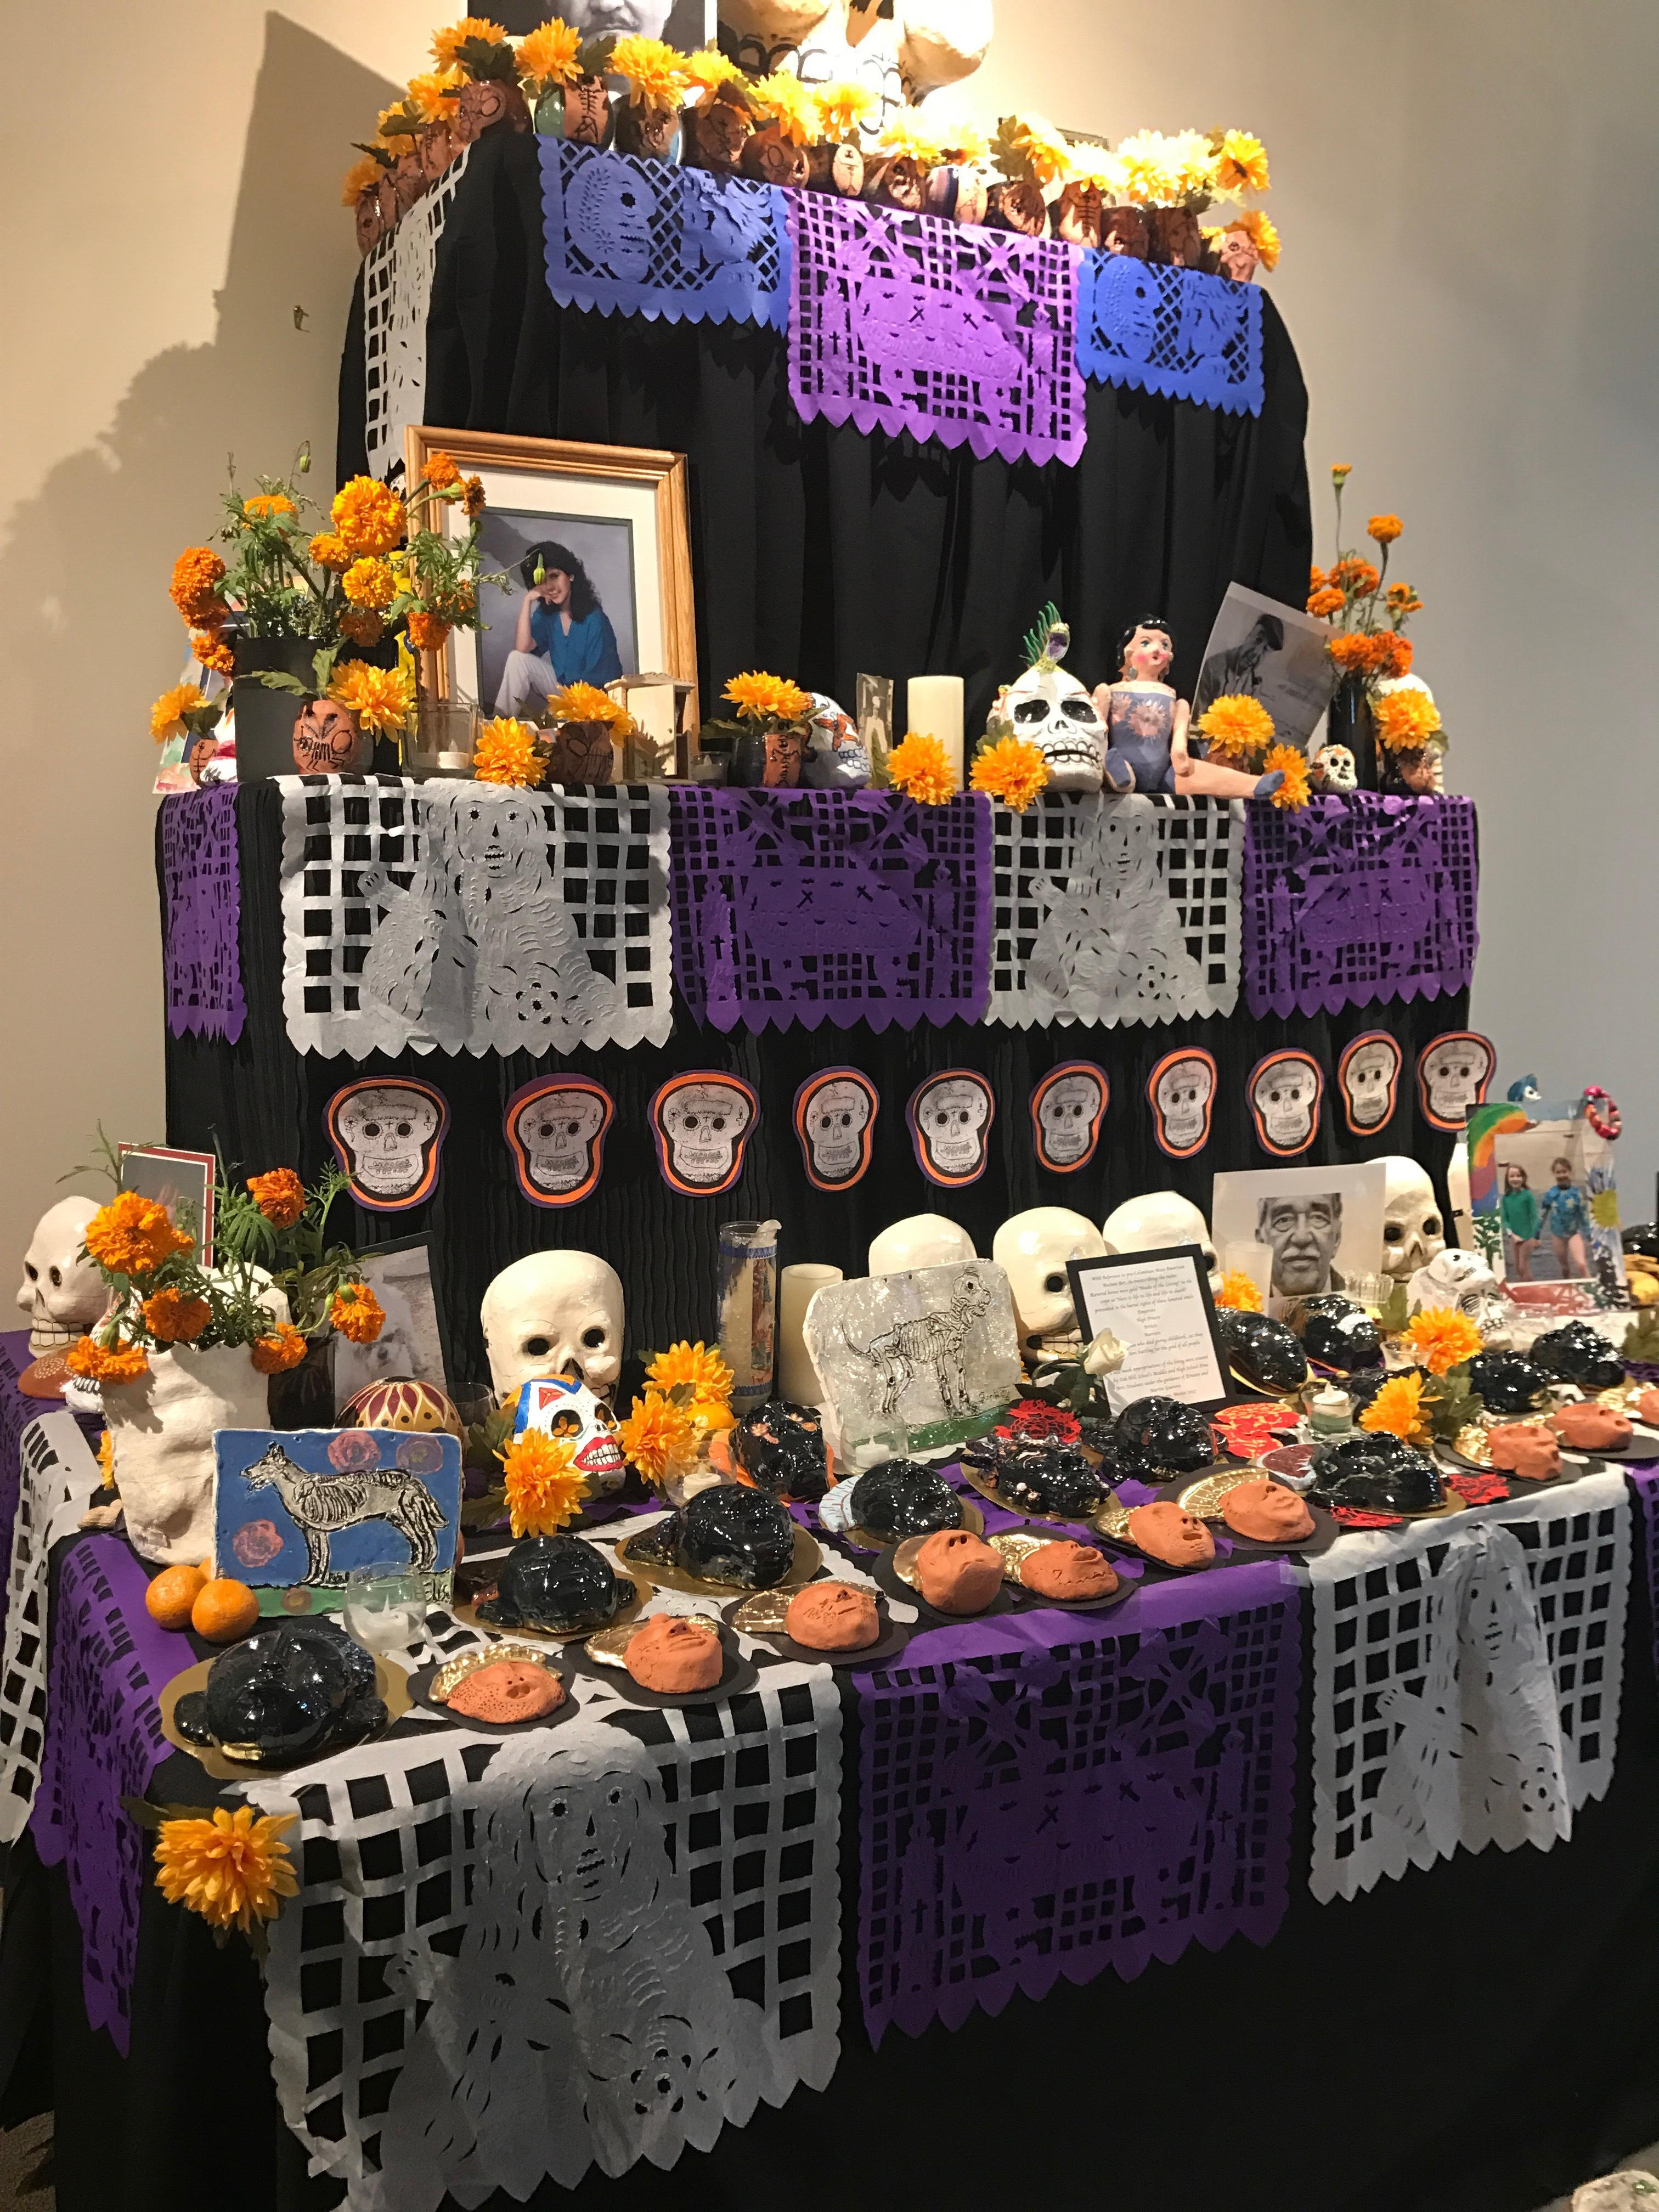 The two day celebration is dedicated to loved ones who have passed away. Creating alters with offerings called ofrendas including the person's favorite food, drinks and items that they once loved. (SBG)